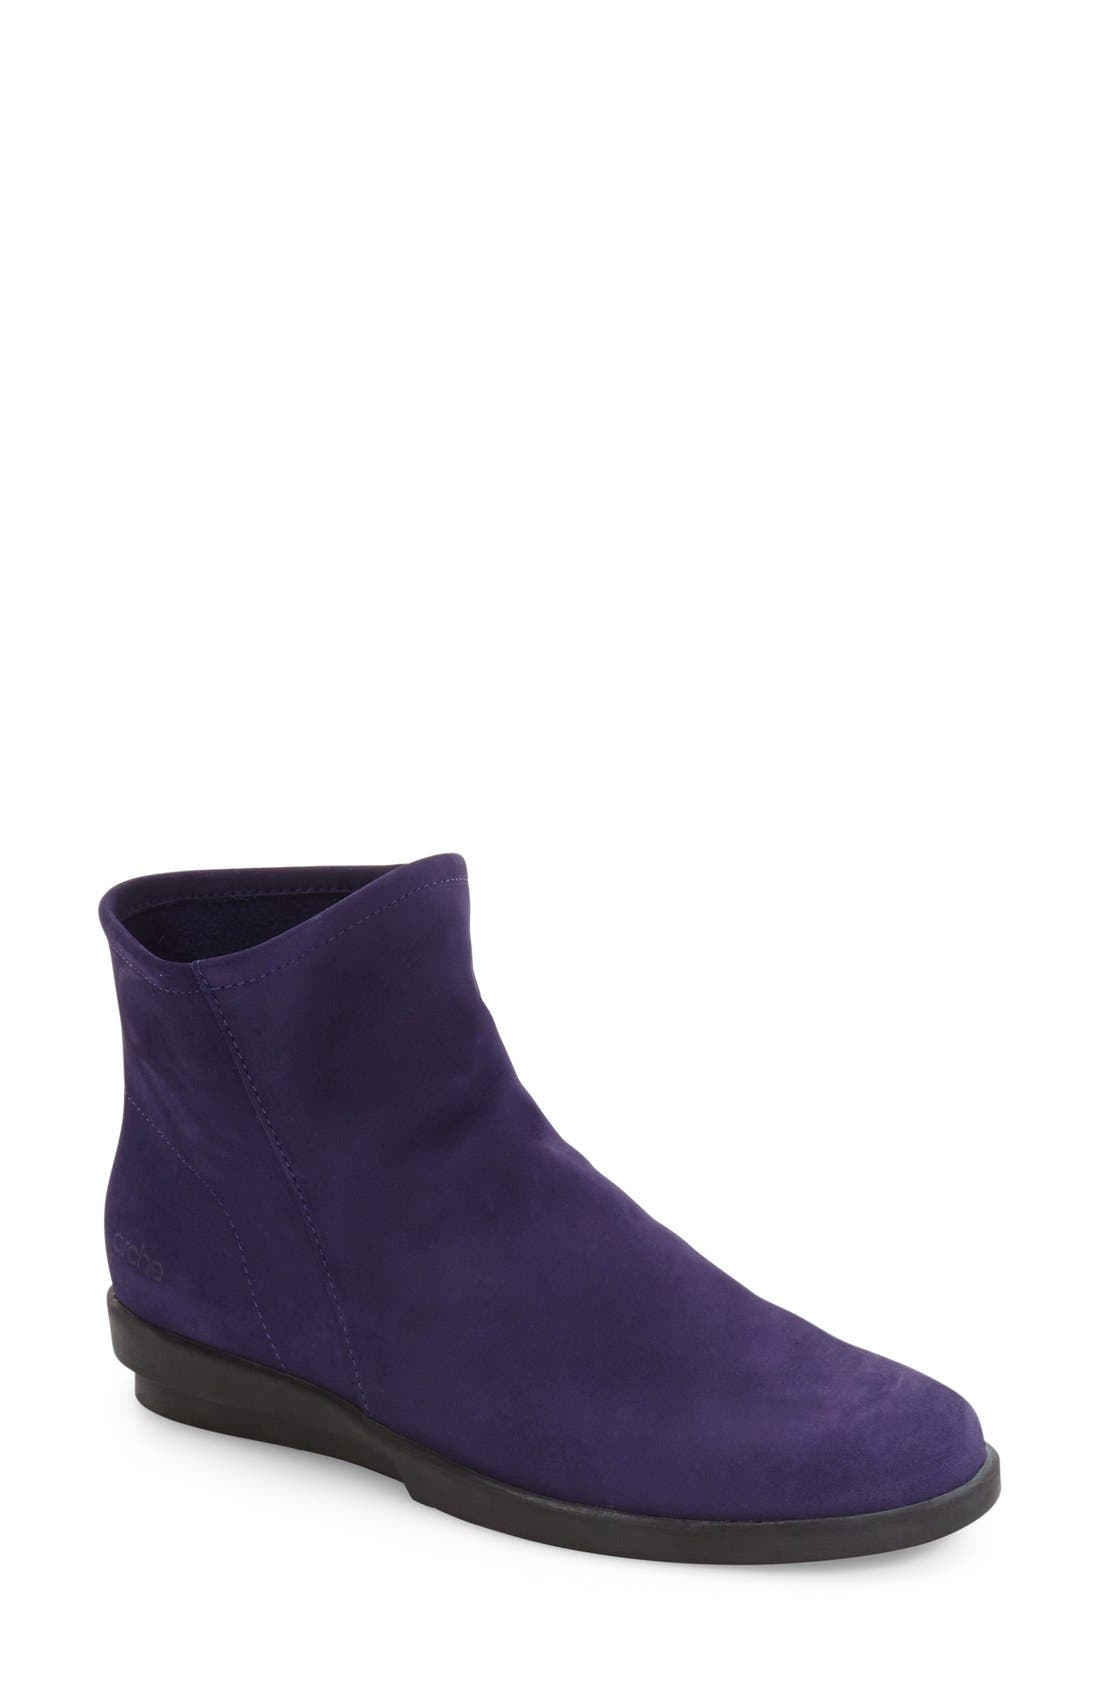 Main Image - Arche 'Detyam' Wedge Zip Bootie (Women)